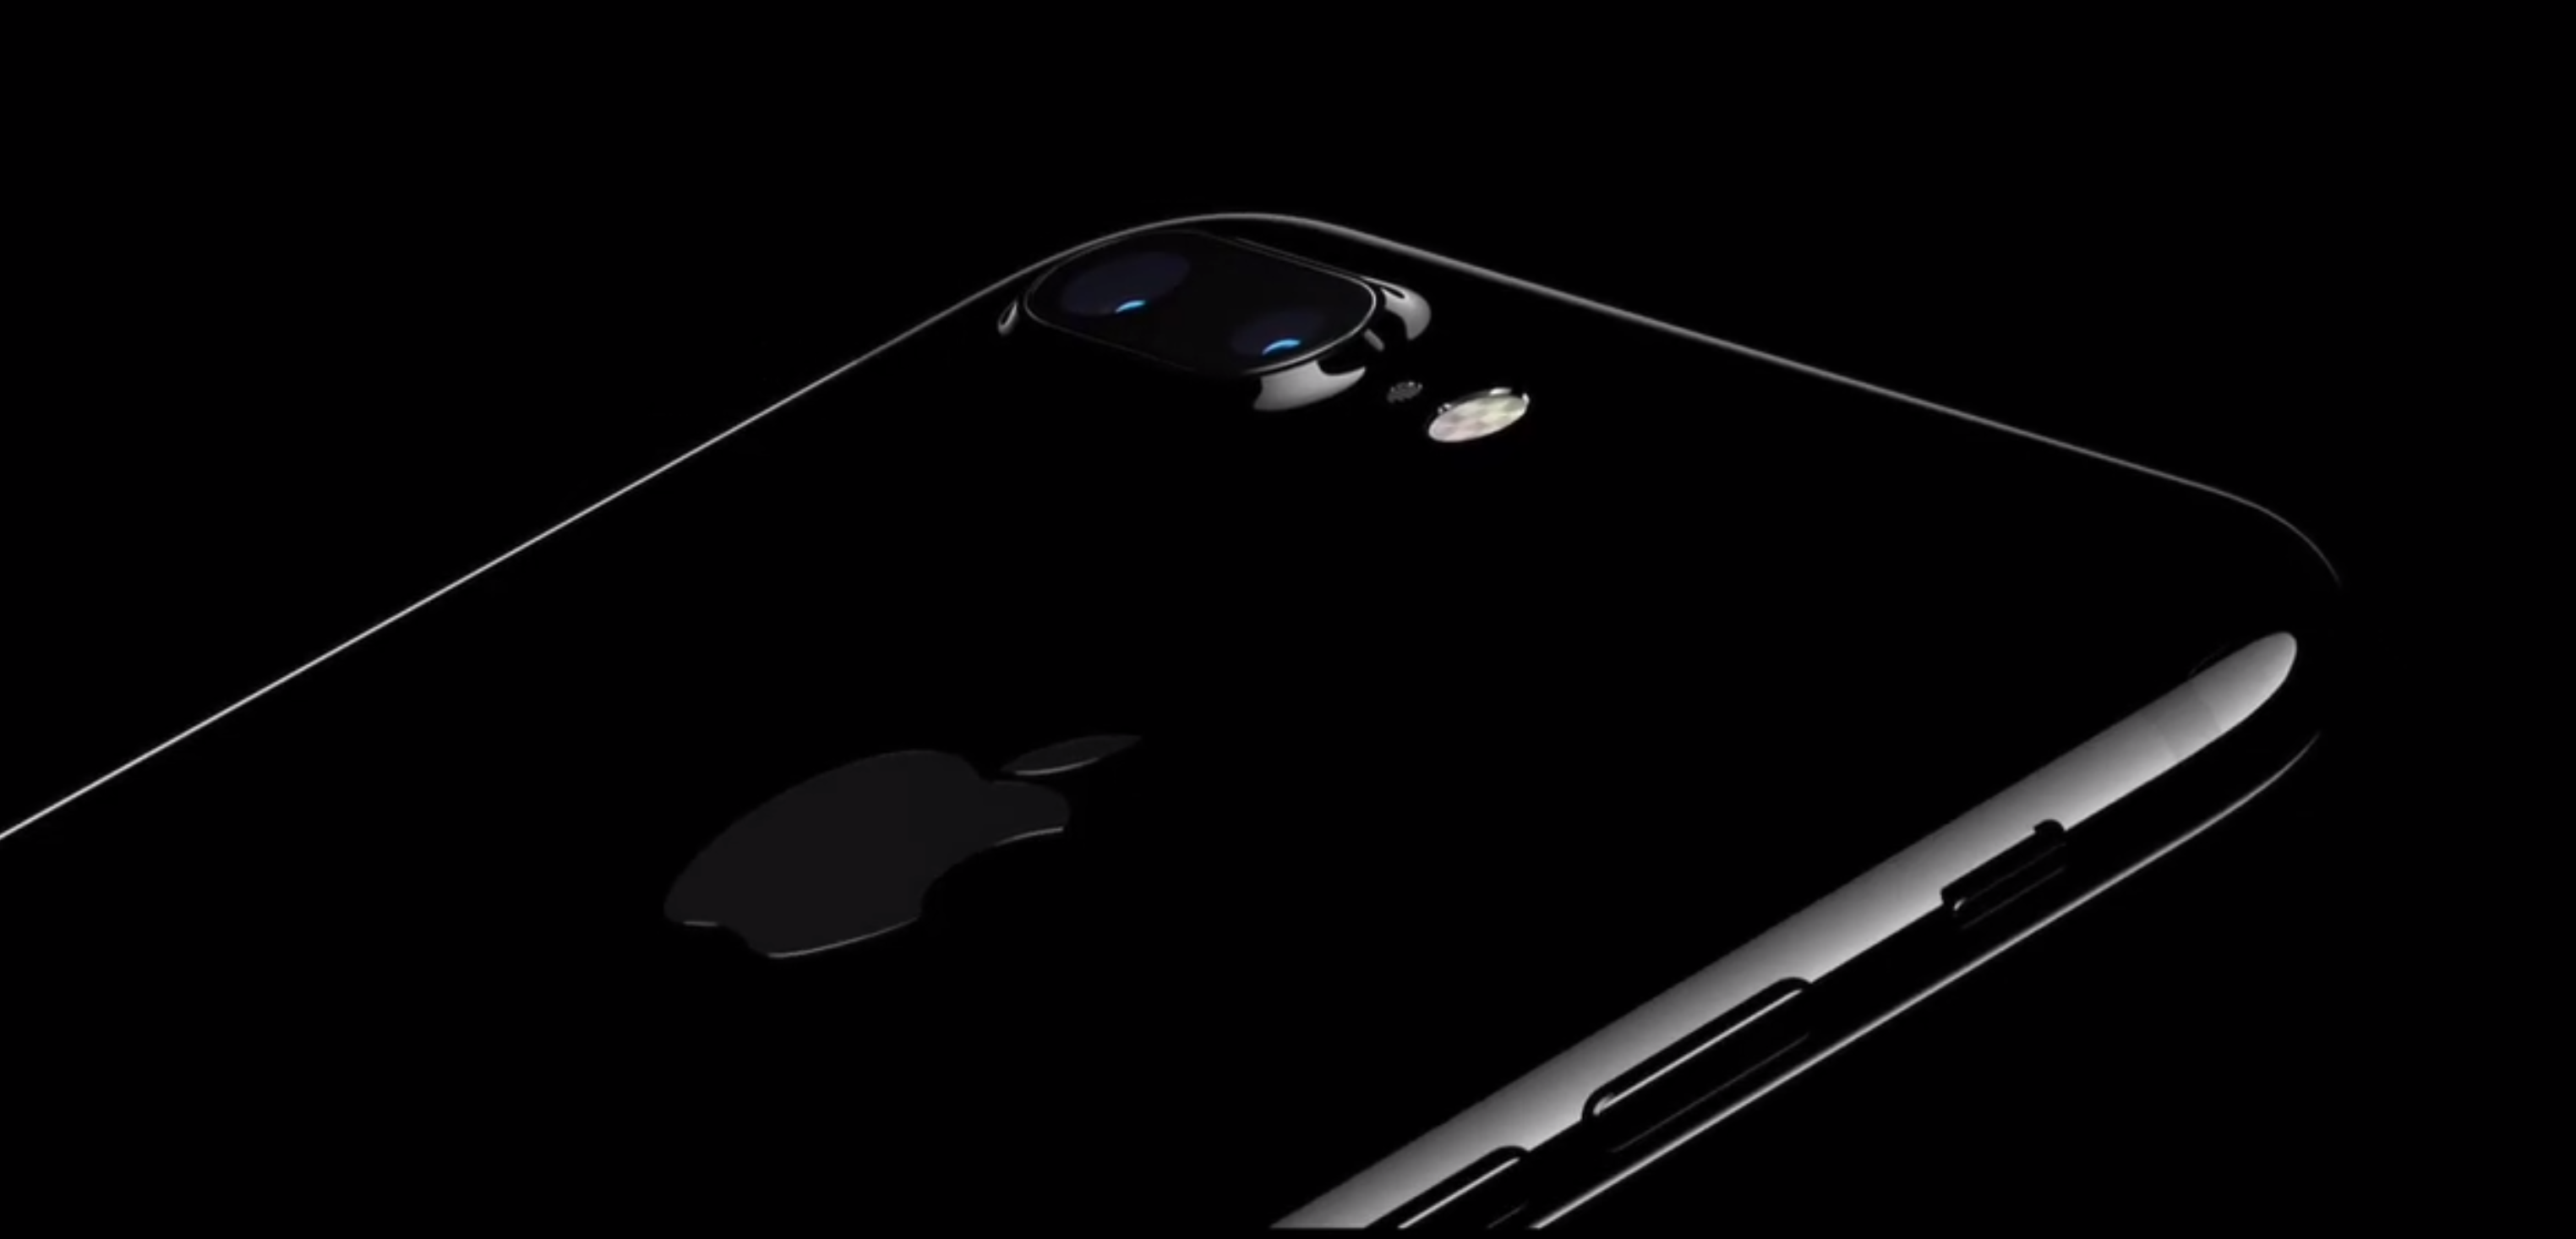 Apple warns that its jet black iPhone 7 scratches easily